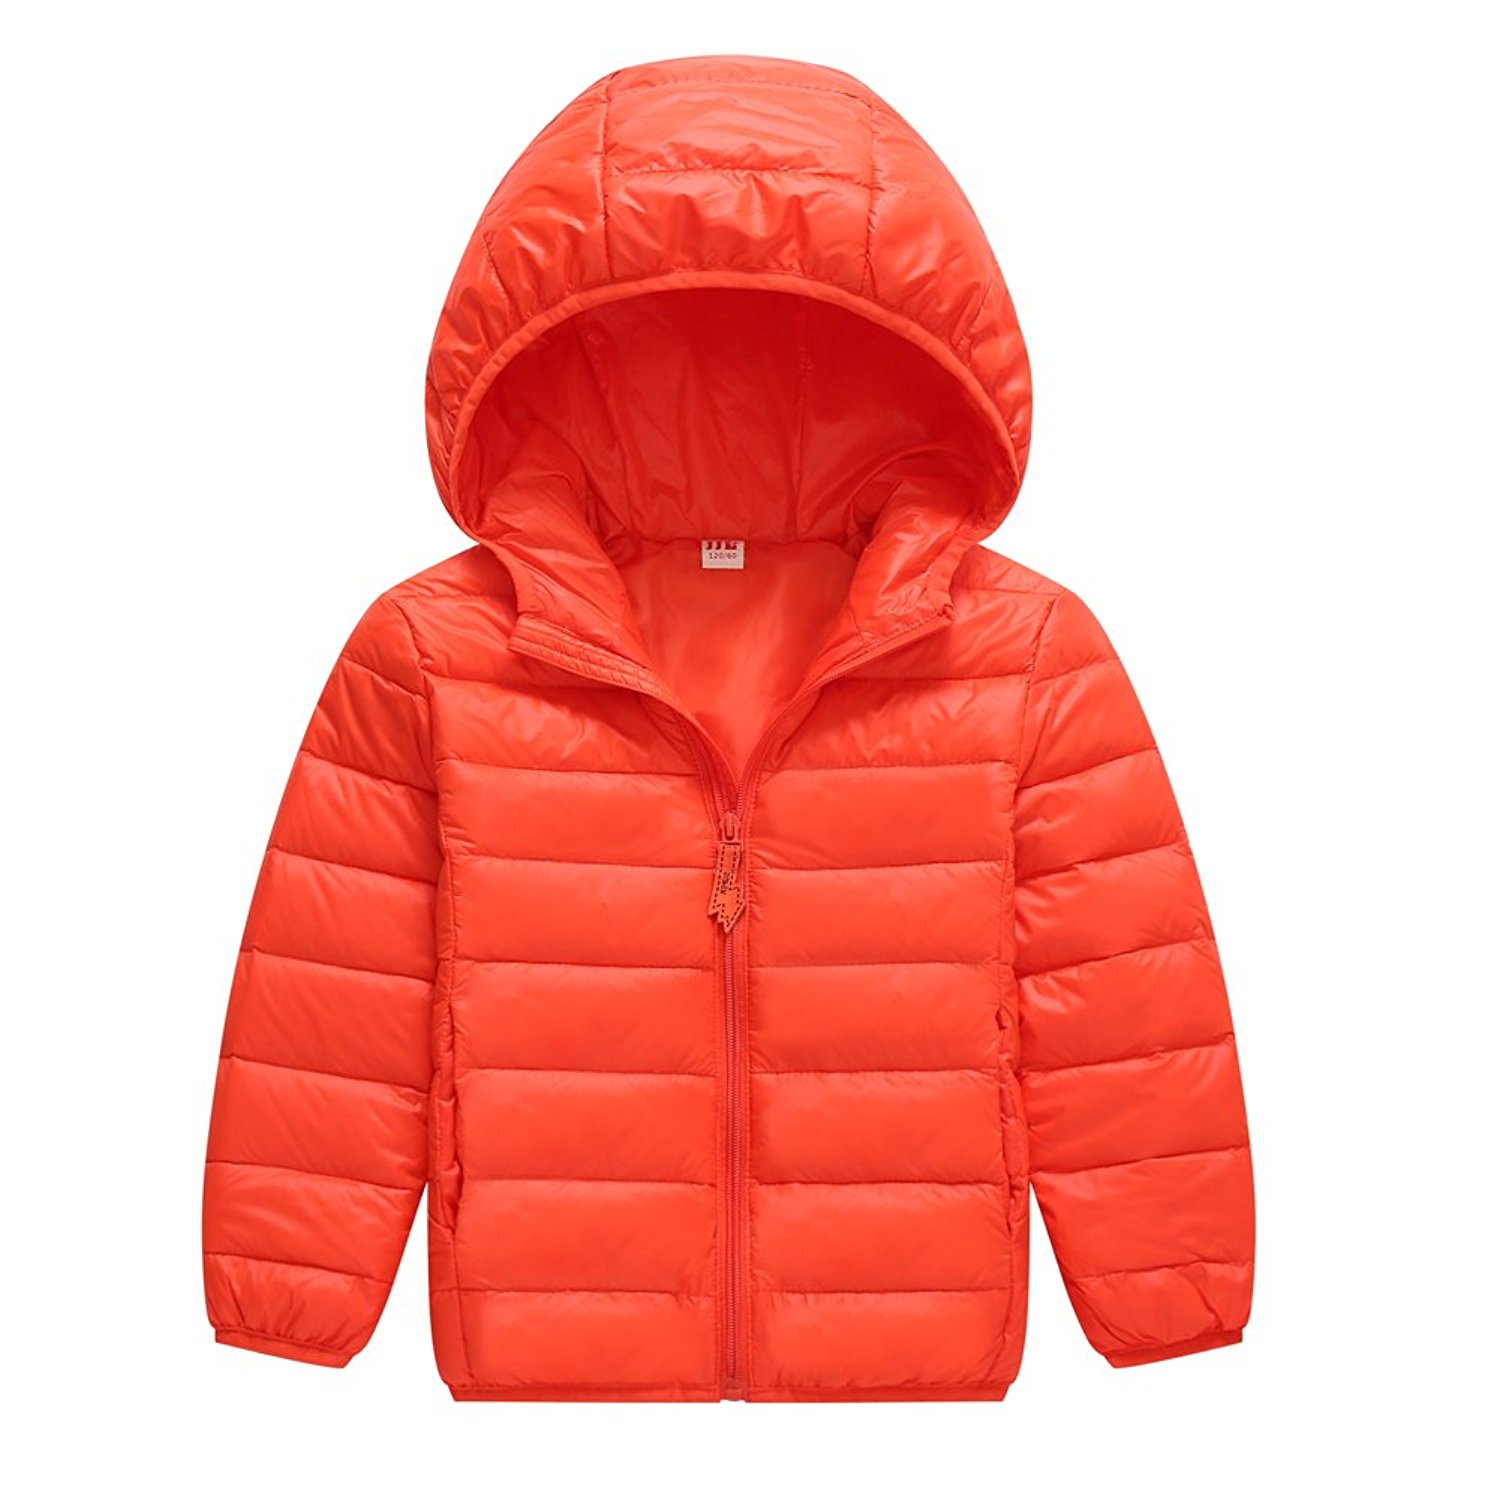 ef2e2abc0 Cheap Puffer Jackets For Boys, find Puffer Jackets For Boys deals on ...